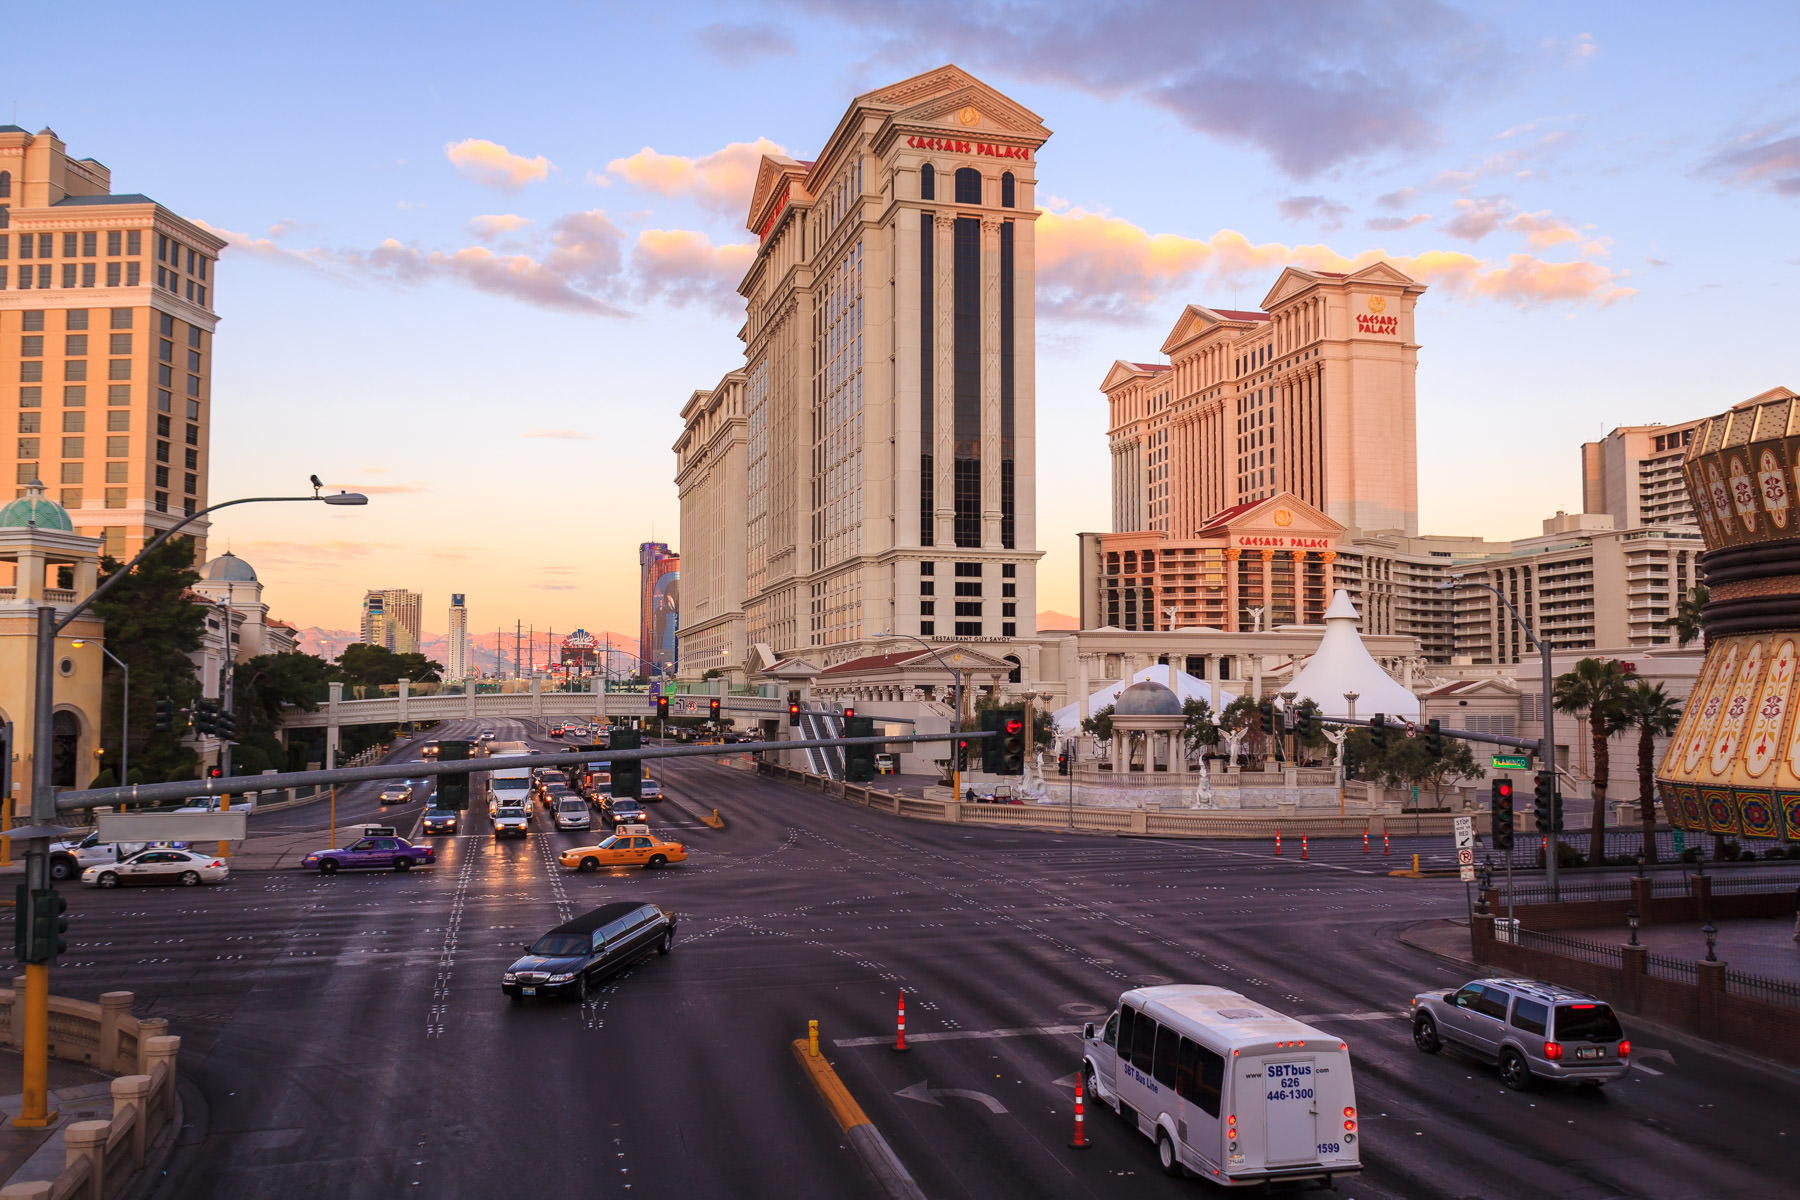 The early morning sun rises over Caesars Palace and the intersection of Flamingo Road and Las Vegas Boulevard.